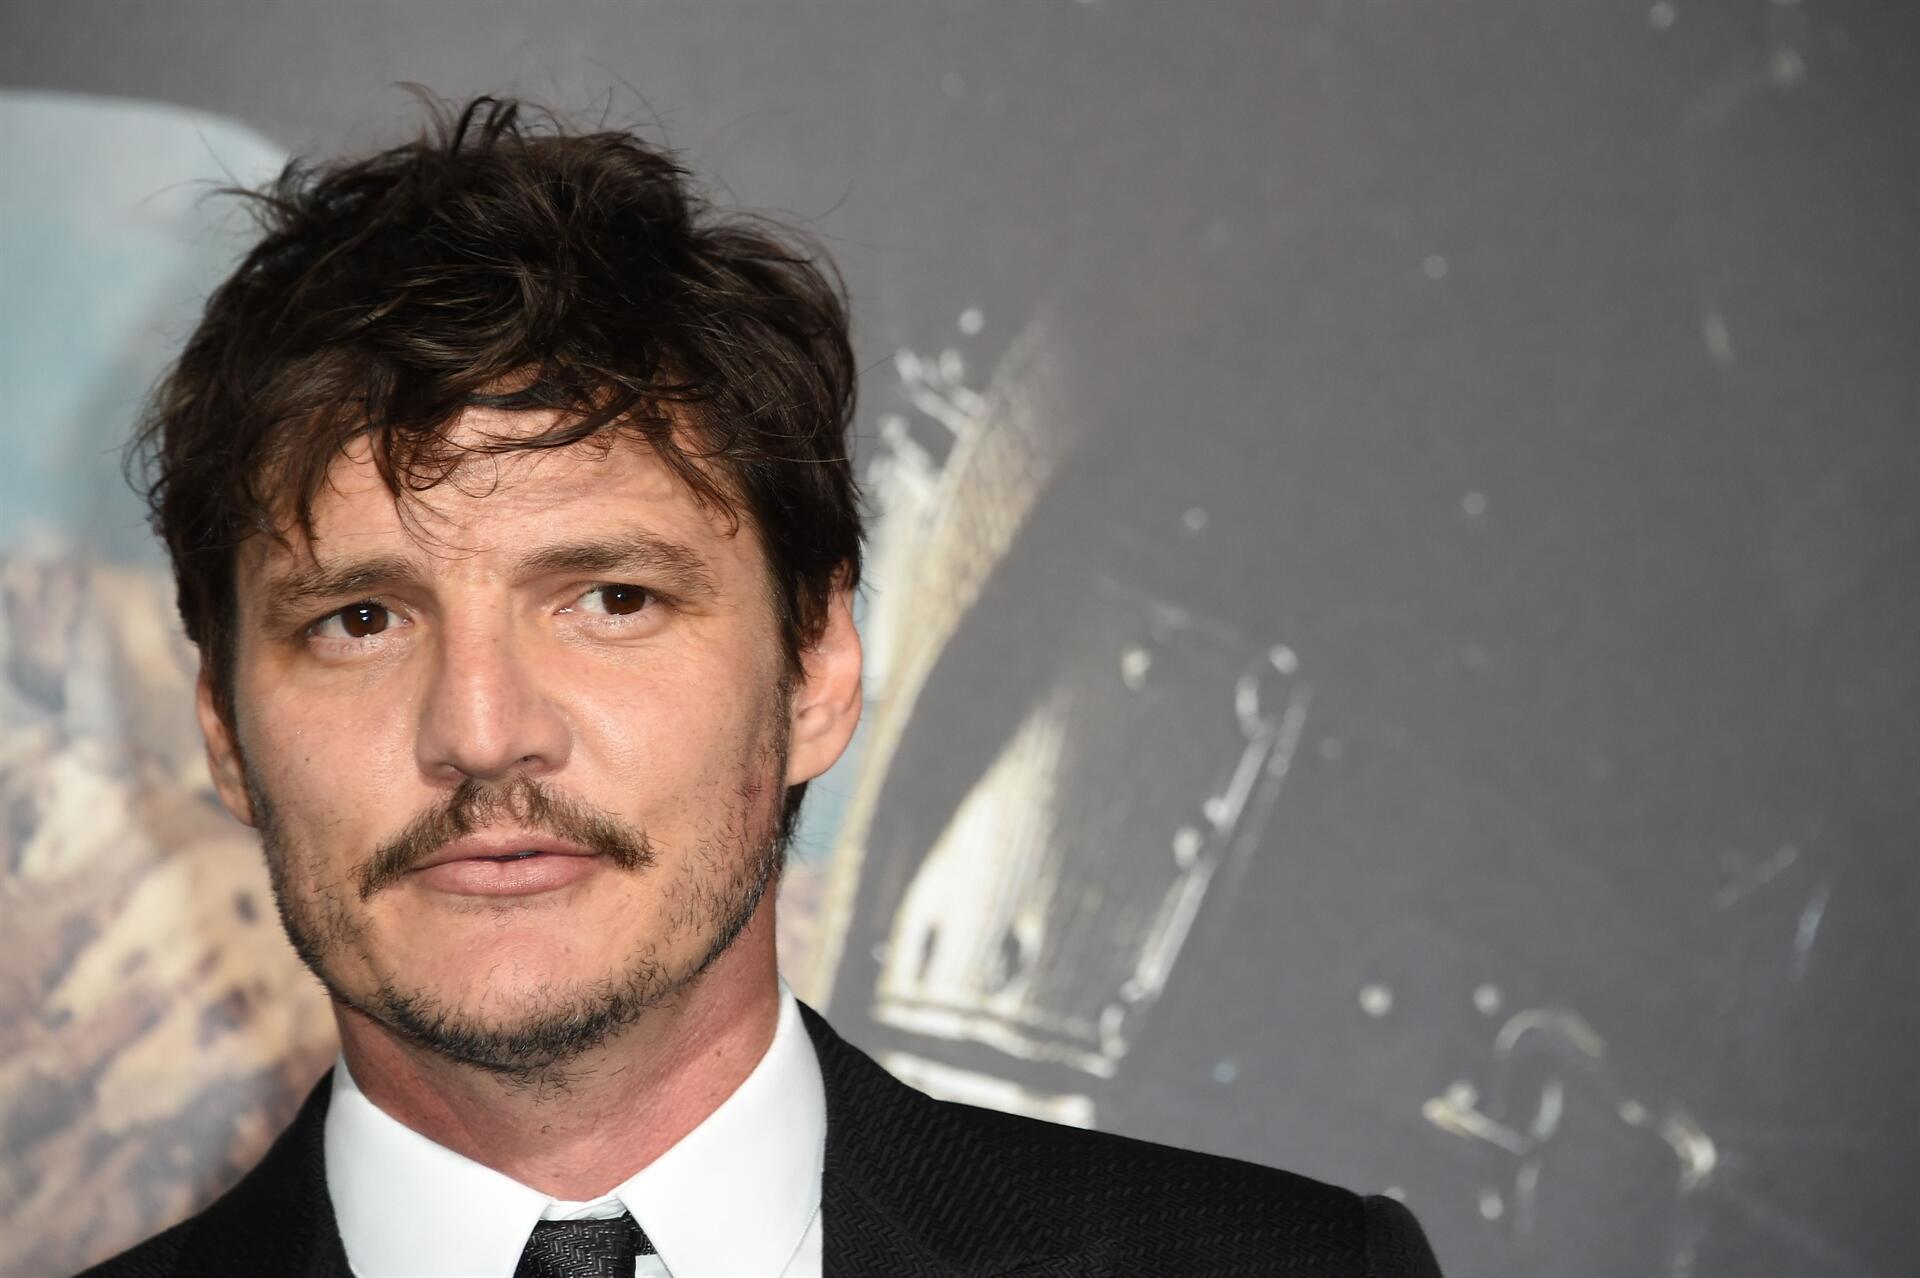 pedro pascal burt reynoldspedro pascal game of thrones, pedro pascal gif, pedro pascal wife, pedro pascal height, pedro pascal 2019, pedro pascal gif hunt, pedro pascal and oscar isaac, pedro pascal insta, pedro pascal wiki, pedro pascal narcos mexico, pedro pascal tumblr, pedro pascal biography, pedro pascal burt reynolds, pedro pascal wired, pedro pascal natal chart, pedro pascal pena, pedro pascal is boba fett, pedro pascal zimbio, pedro pascal dc, pedro pascal lena headey